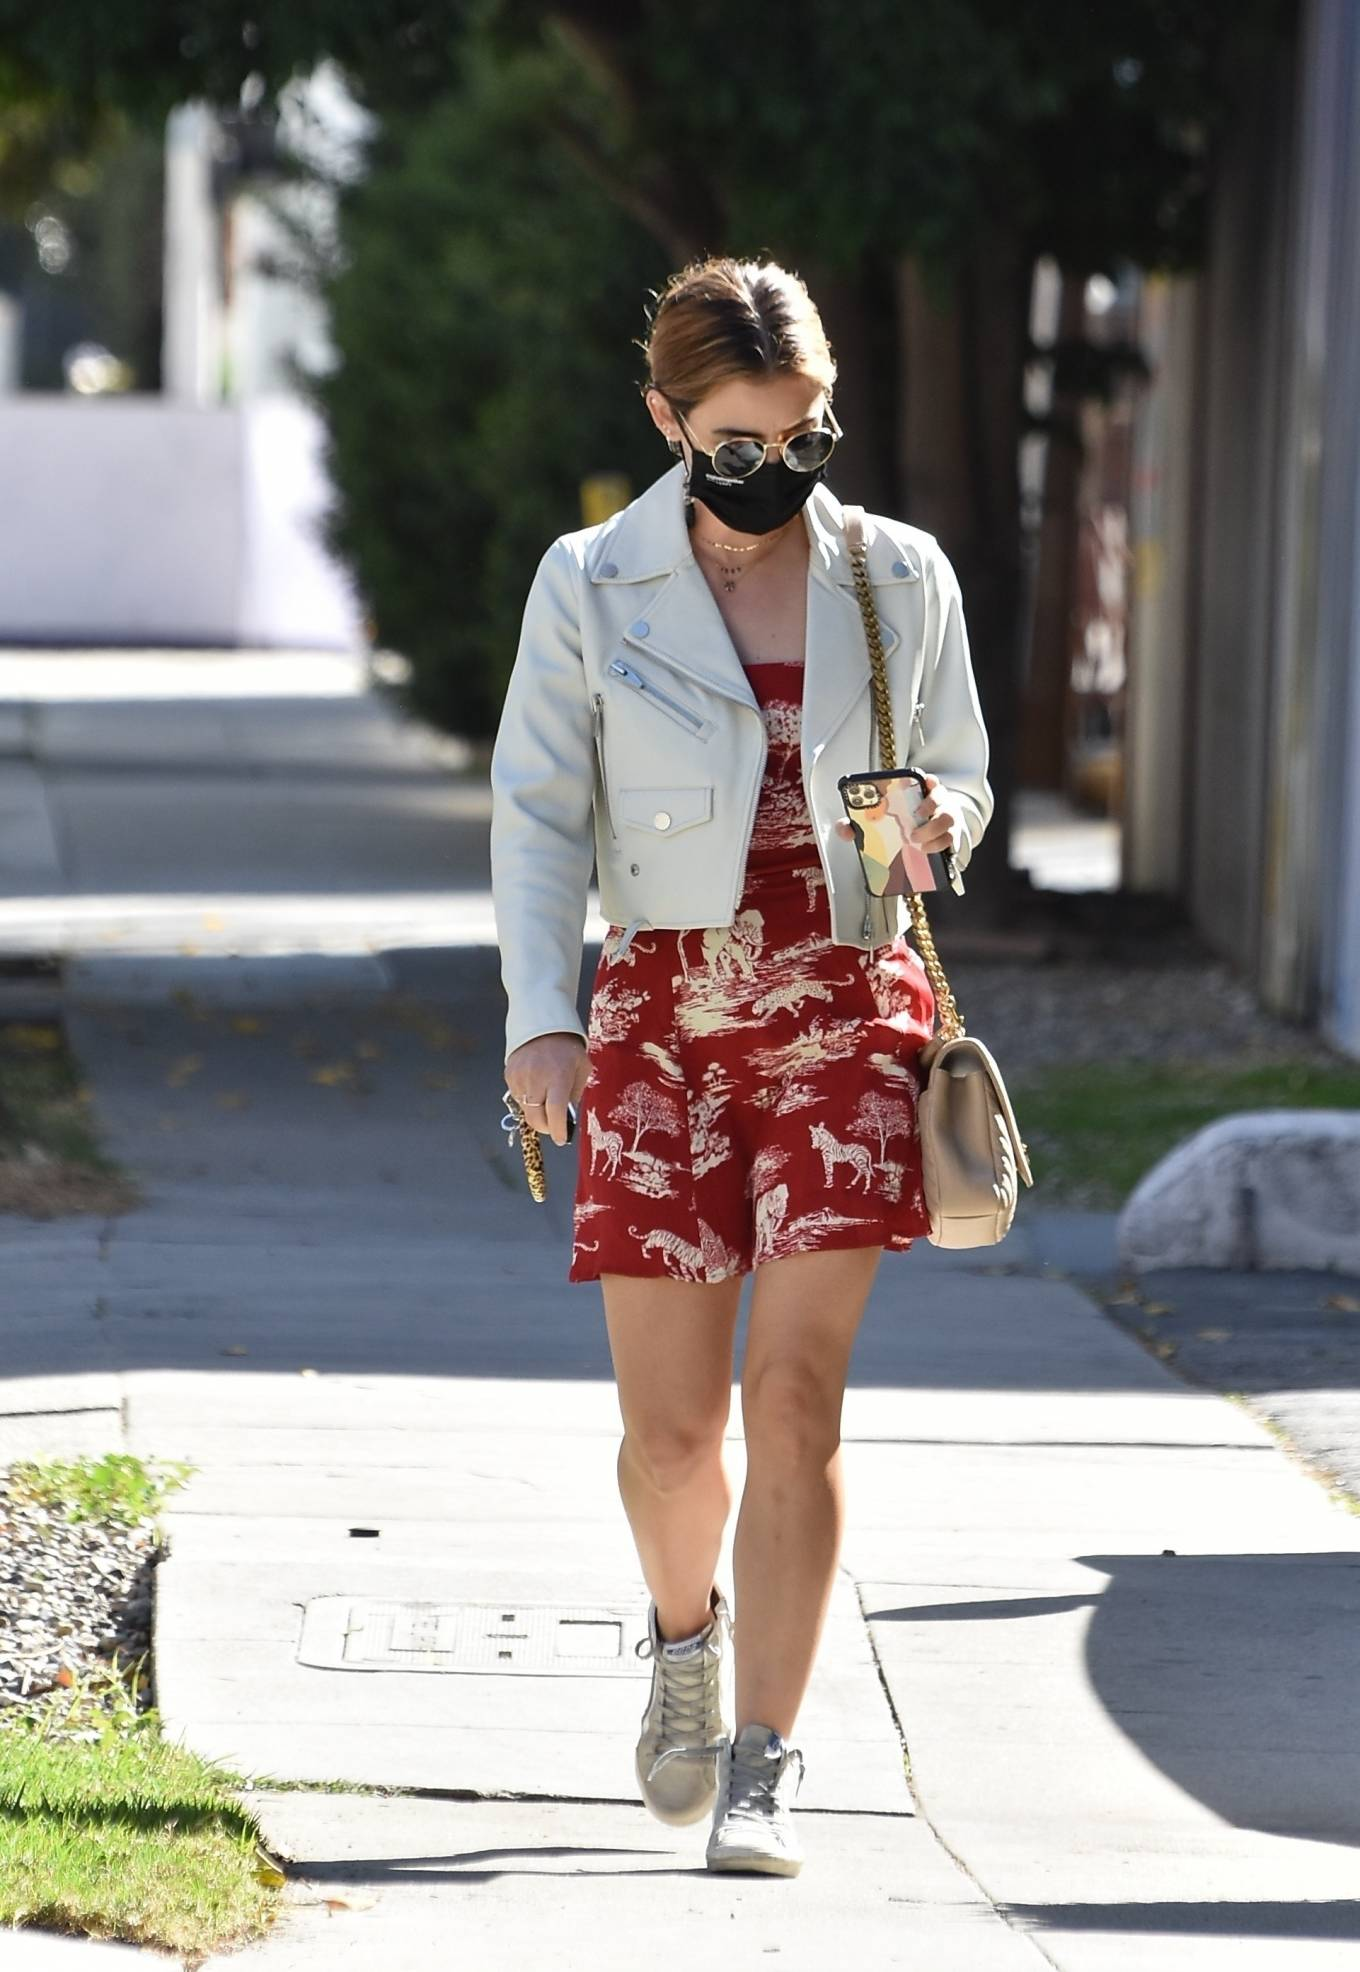 Lucy Hale - Seen in a red dress with a white leather jacket in Los Angeles